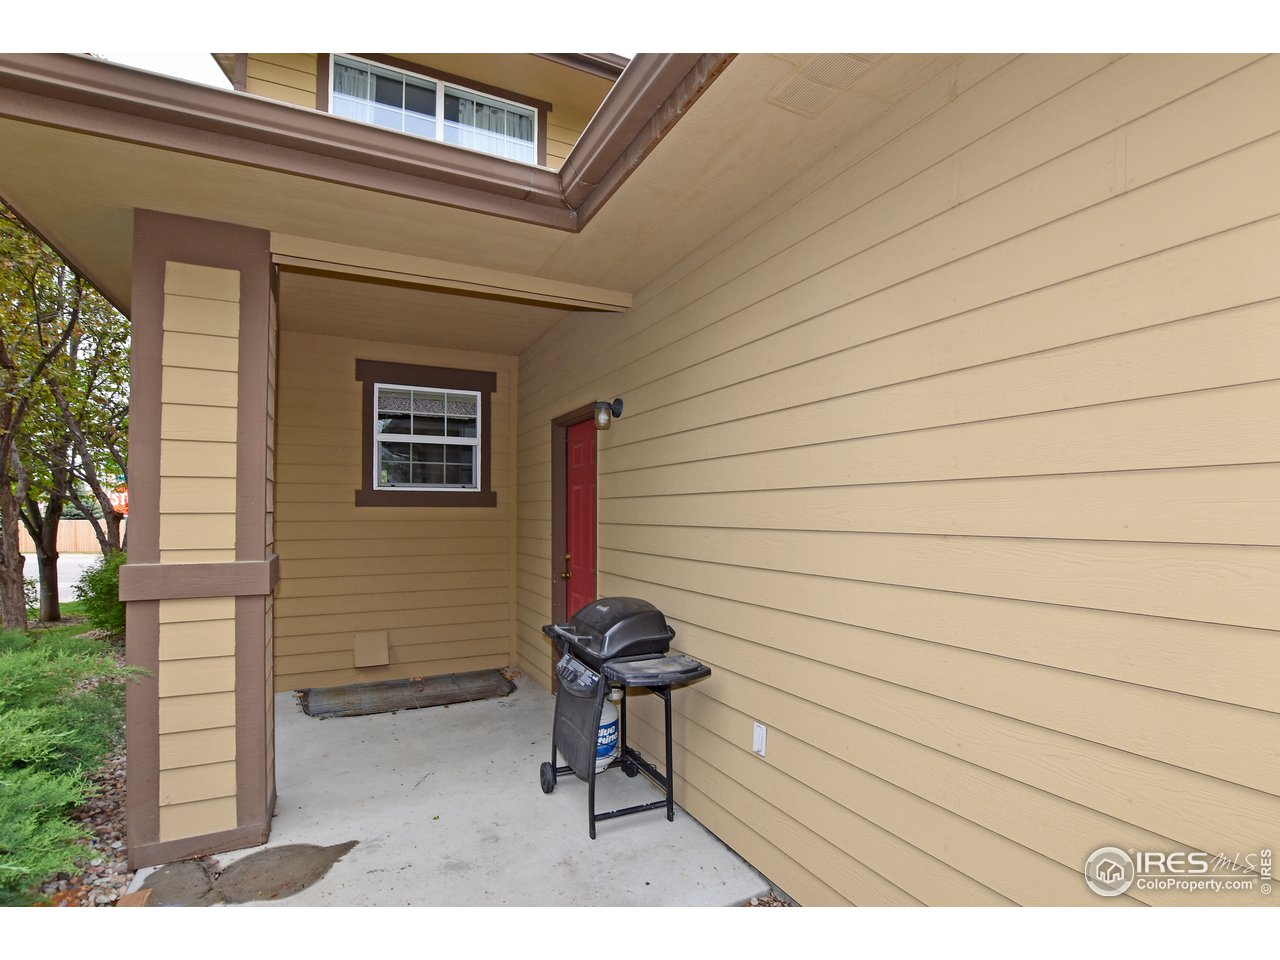 Small patio off of garage